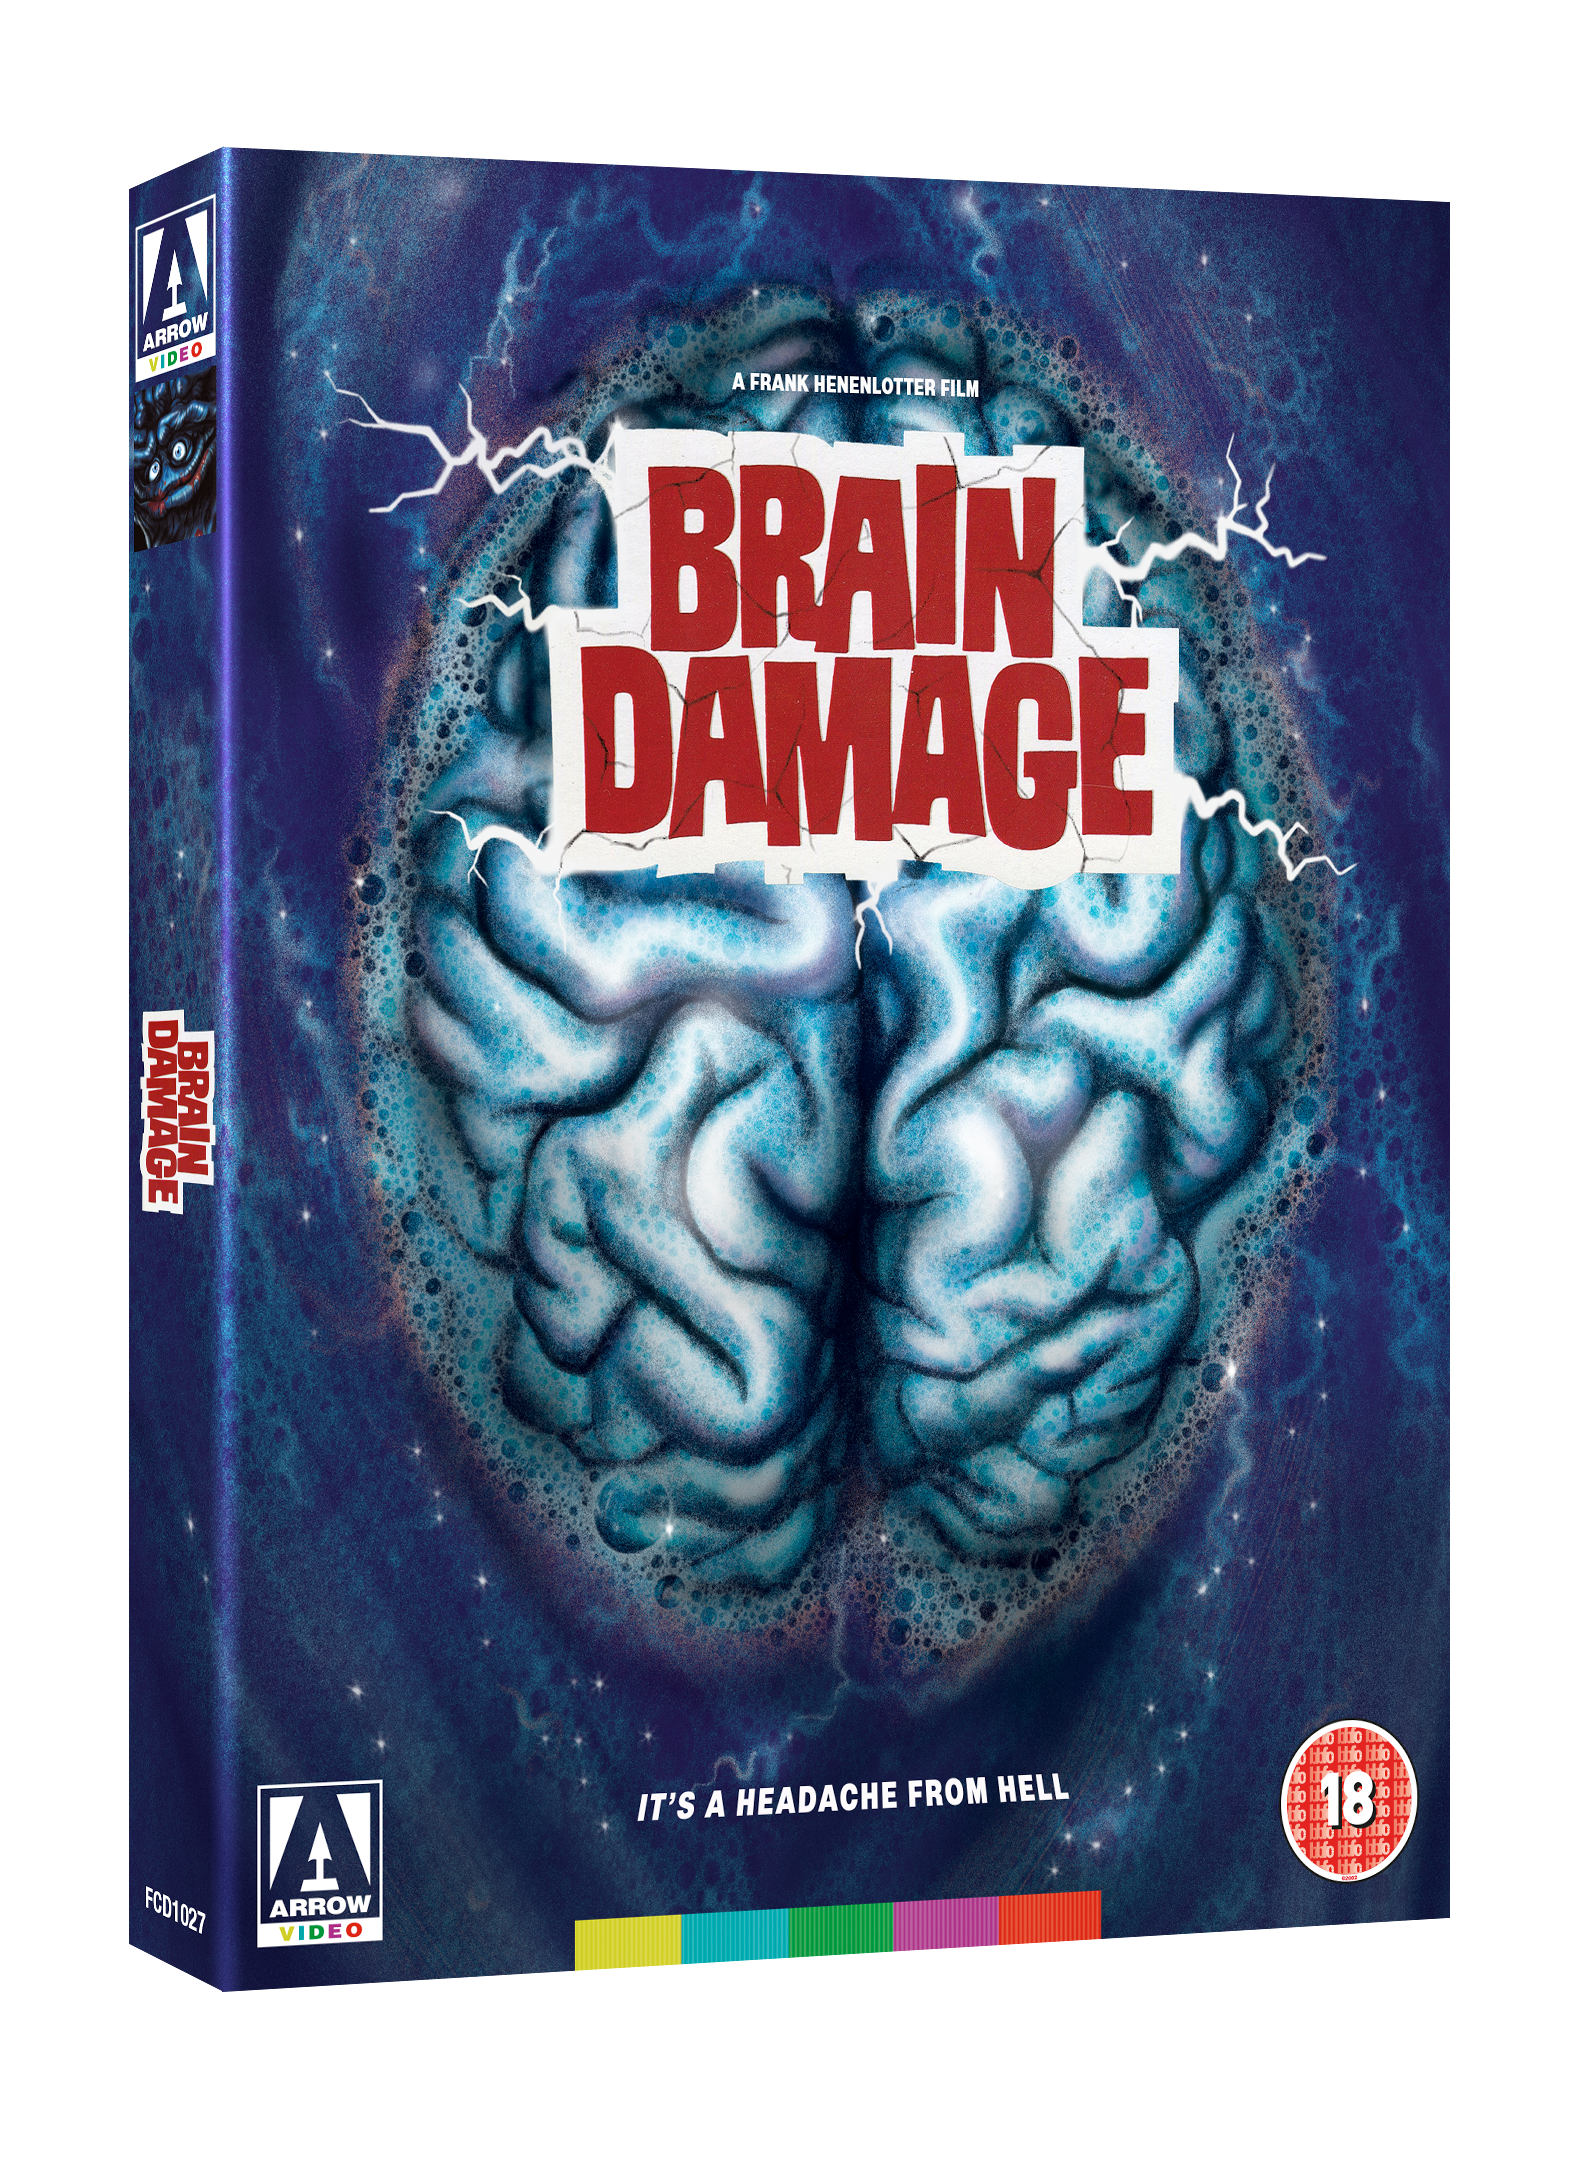 Brain Damage Blu-ray review: Frank Henenlotter's schlock comedy restored